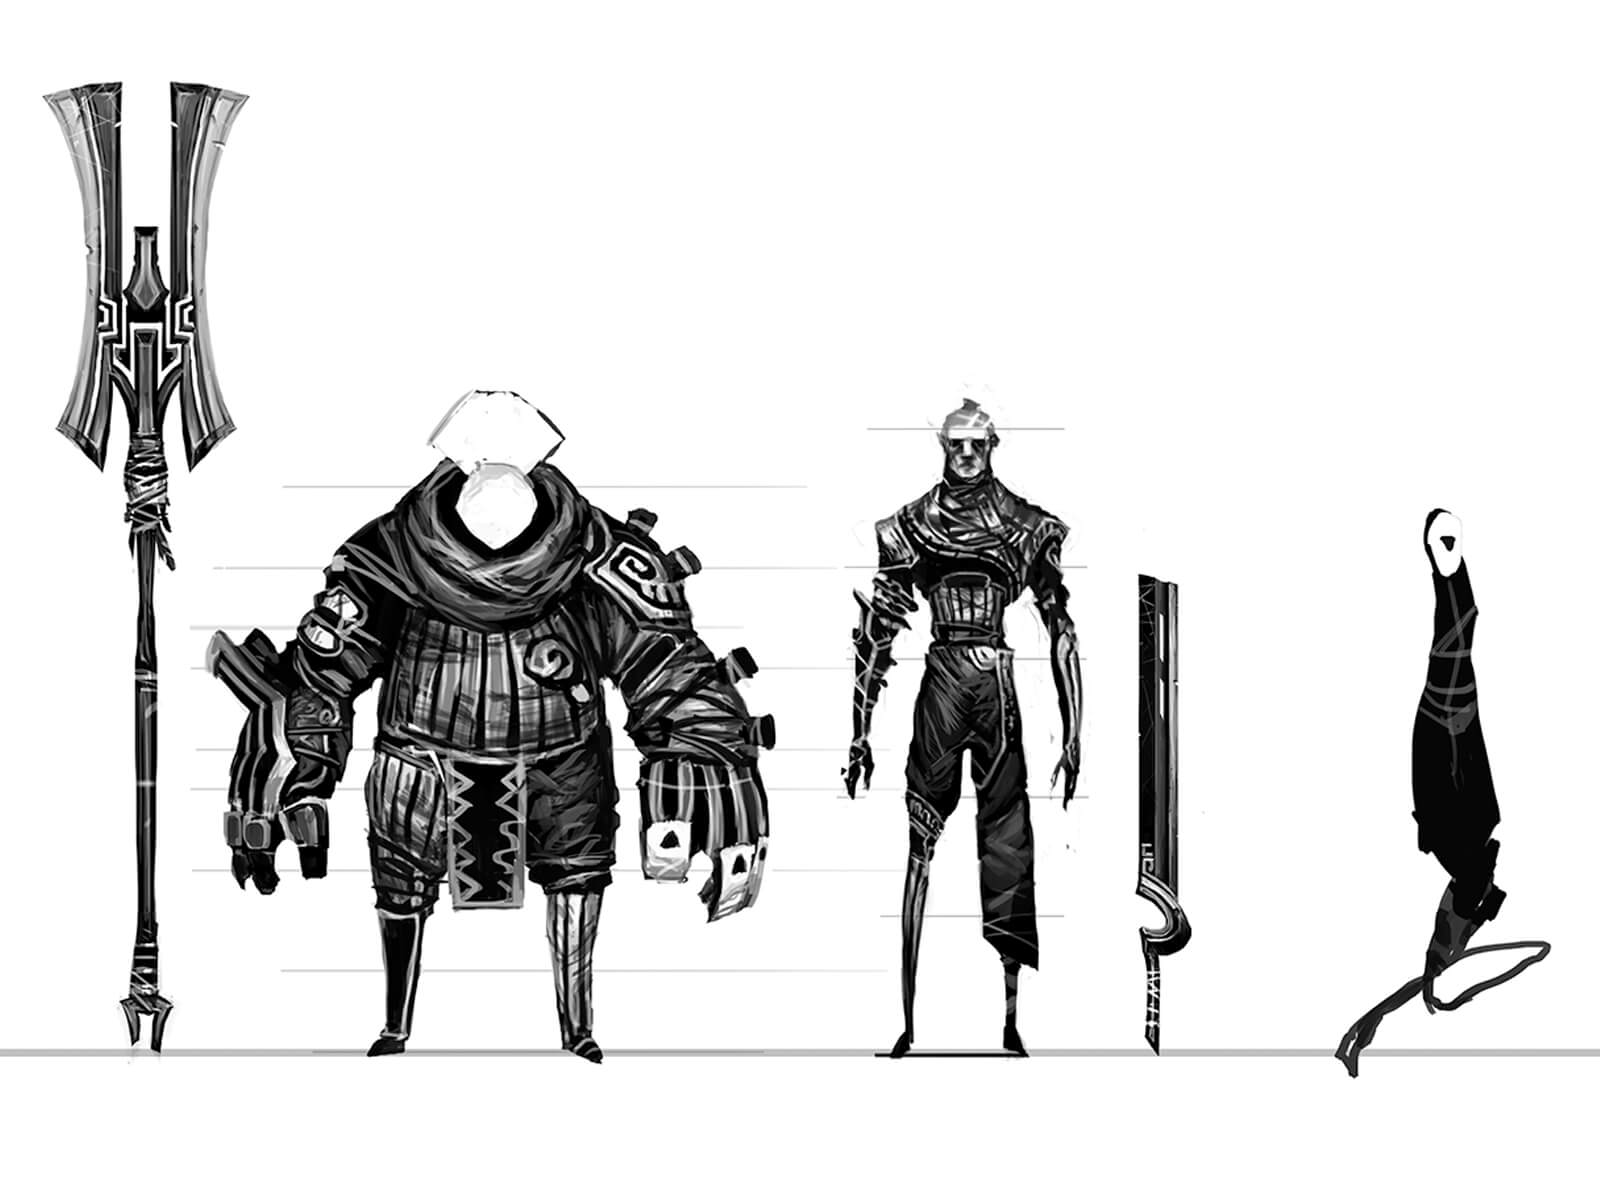 Black-and-white sketches of warriors in ornate battle gear standing face-forward next to their oversize weapons.